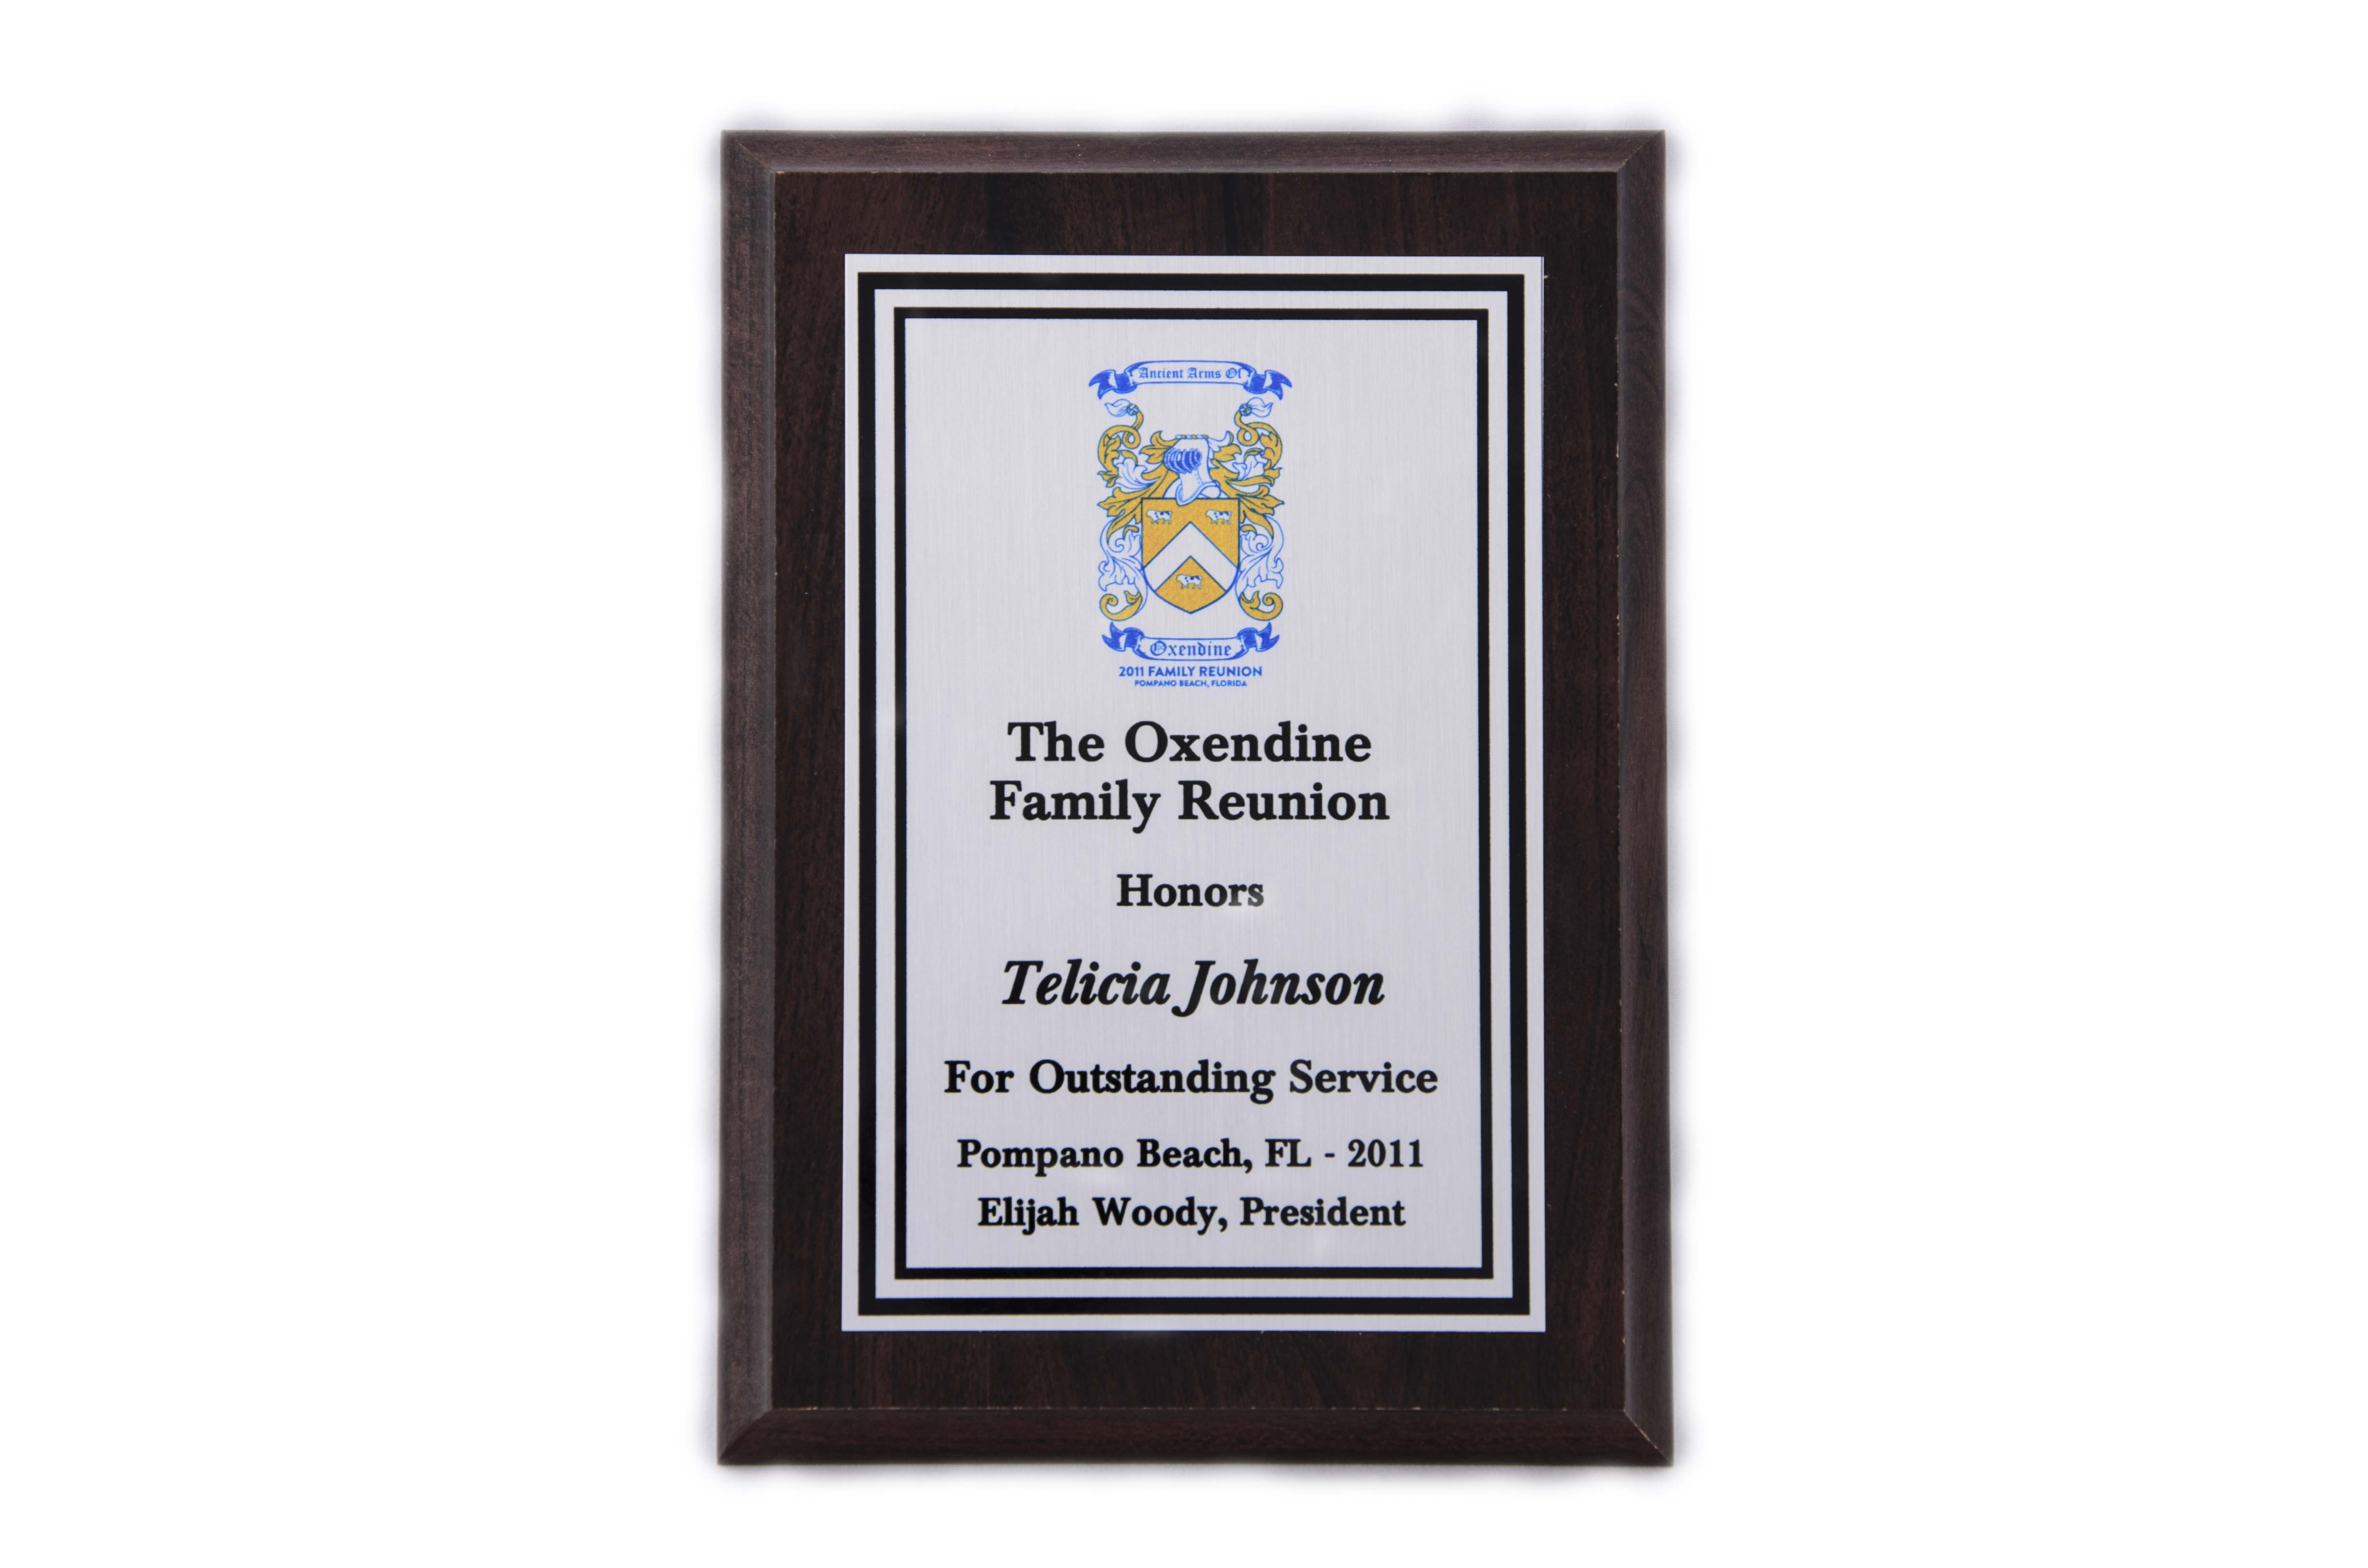 5'' x 7'' oak wood finished plaque - P57